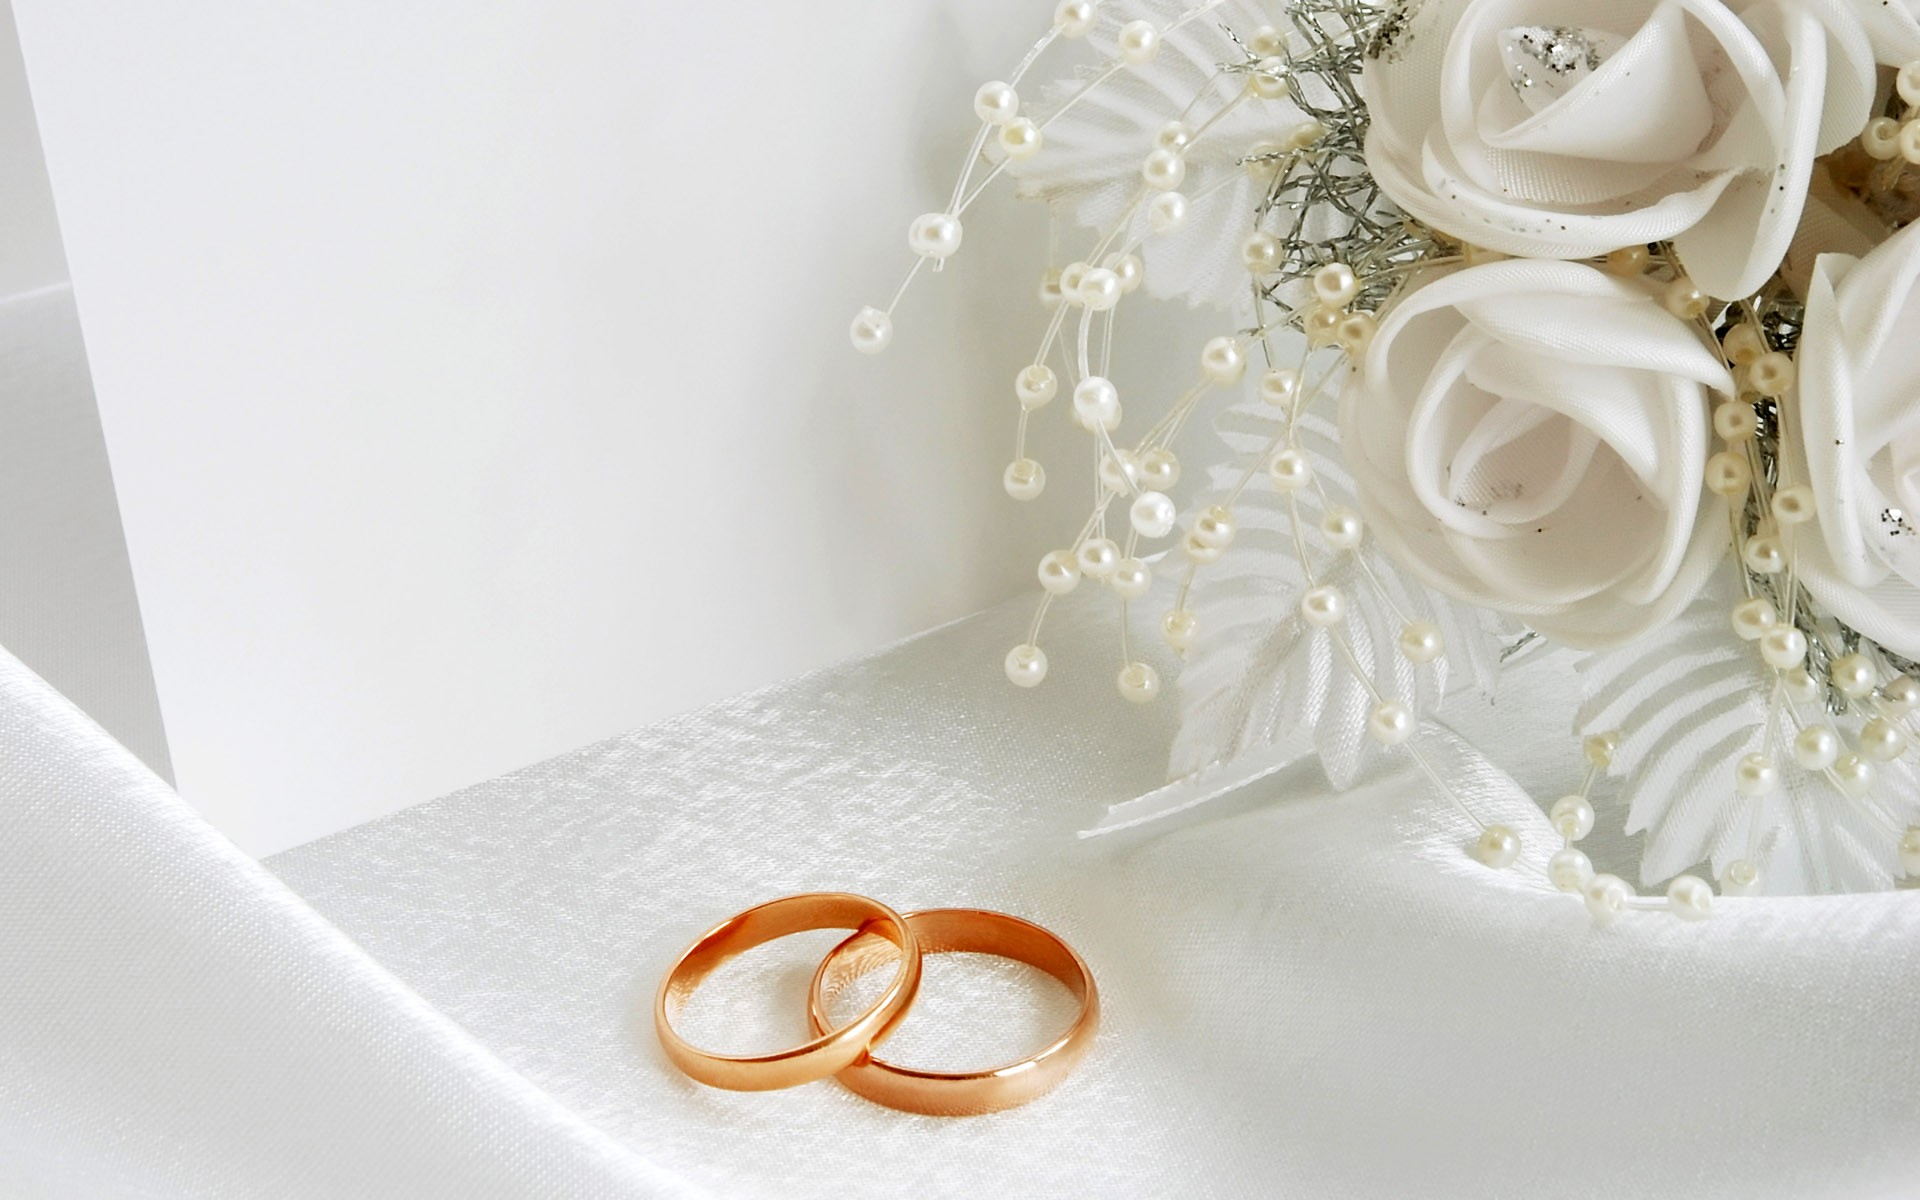 wedding background download free awesome hd wallpapers for